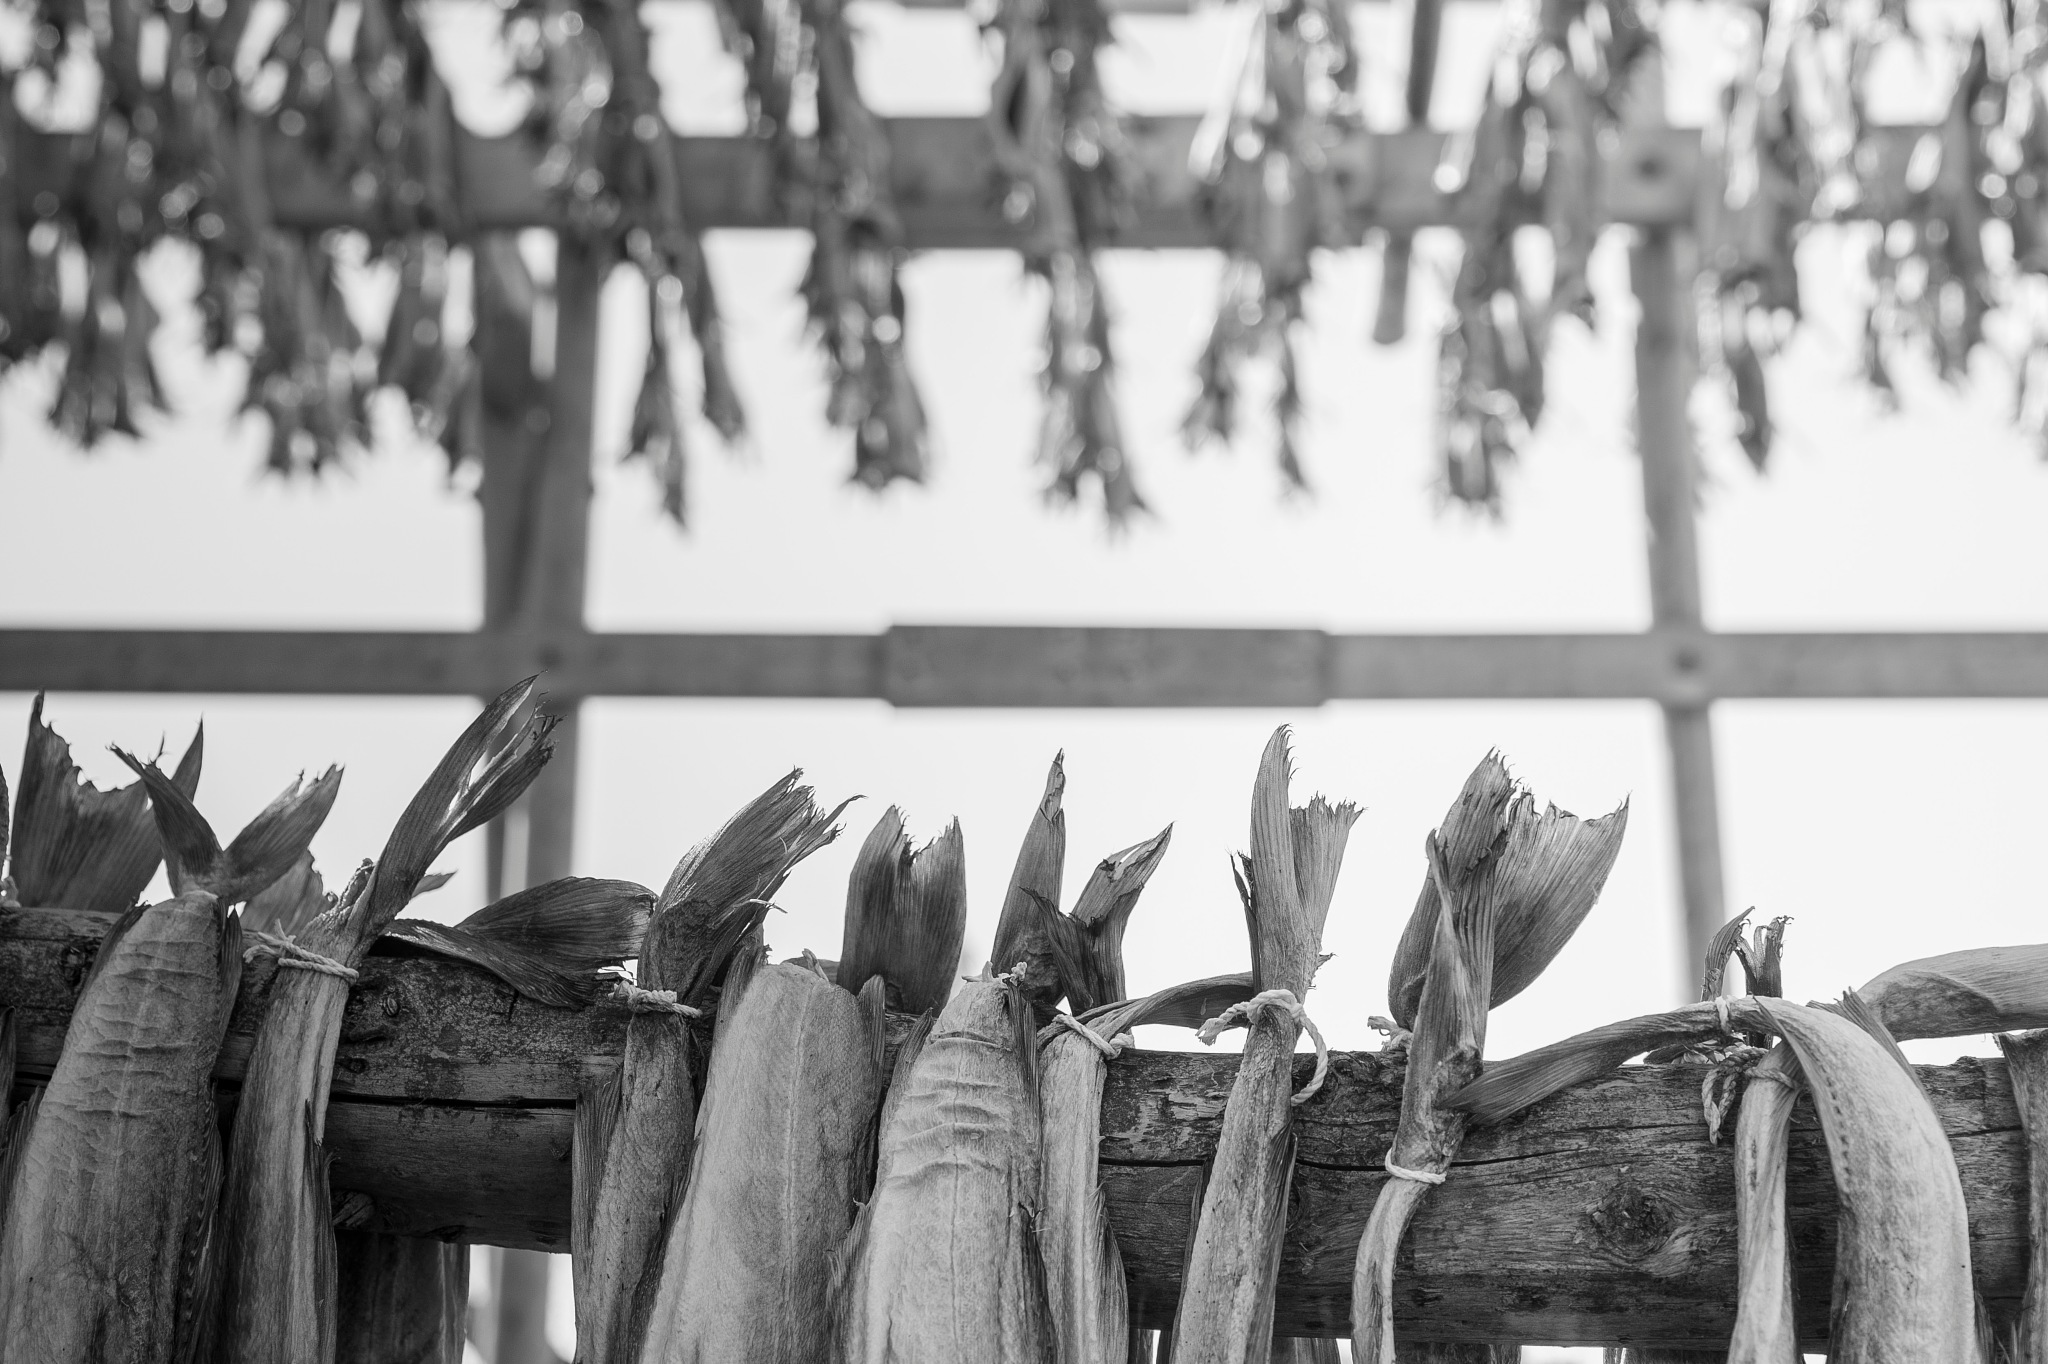 Drying fish by Ninja-Li Einarsen Stahre